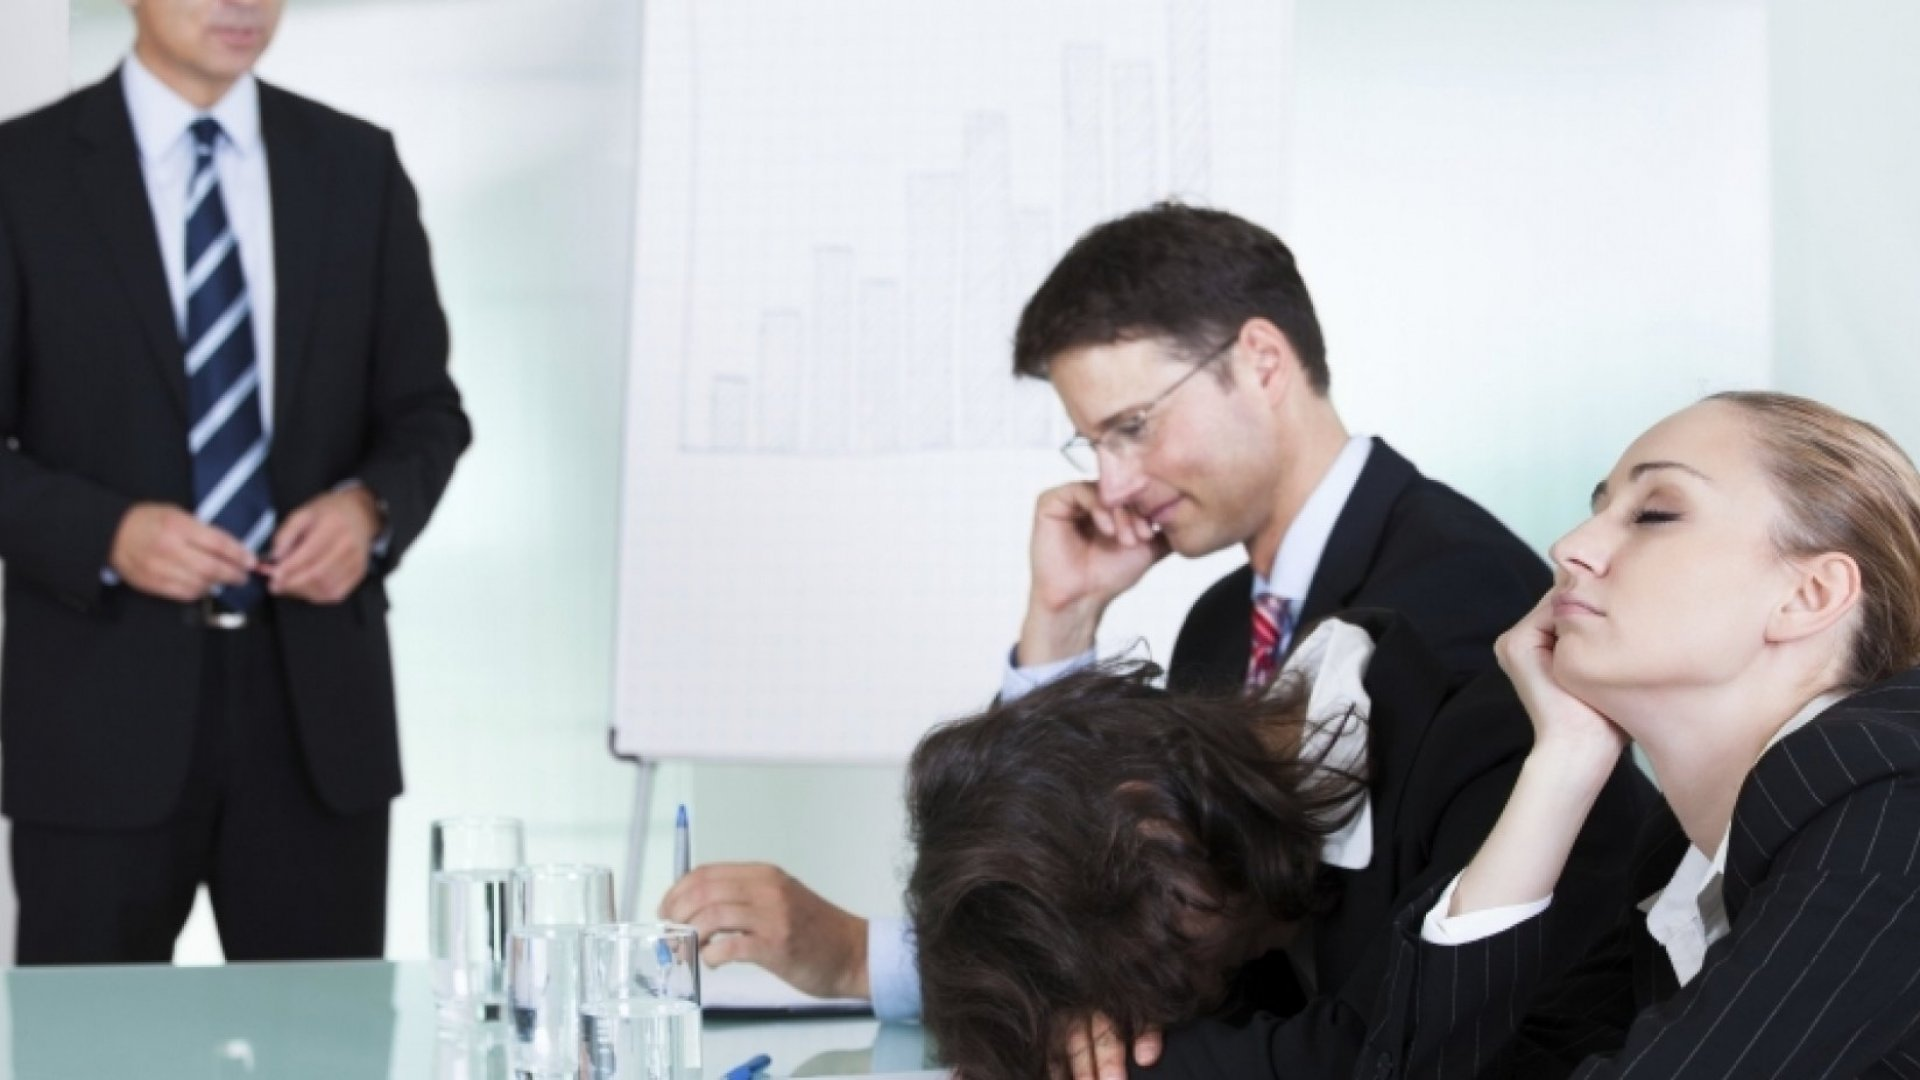 6 Signs Your Meeting is Out of Control and What to Do About It